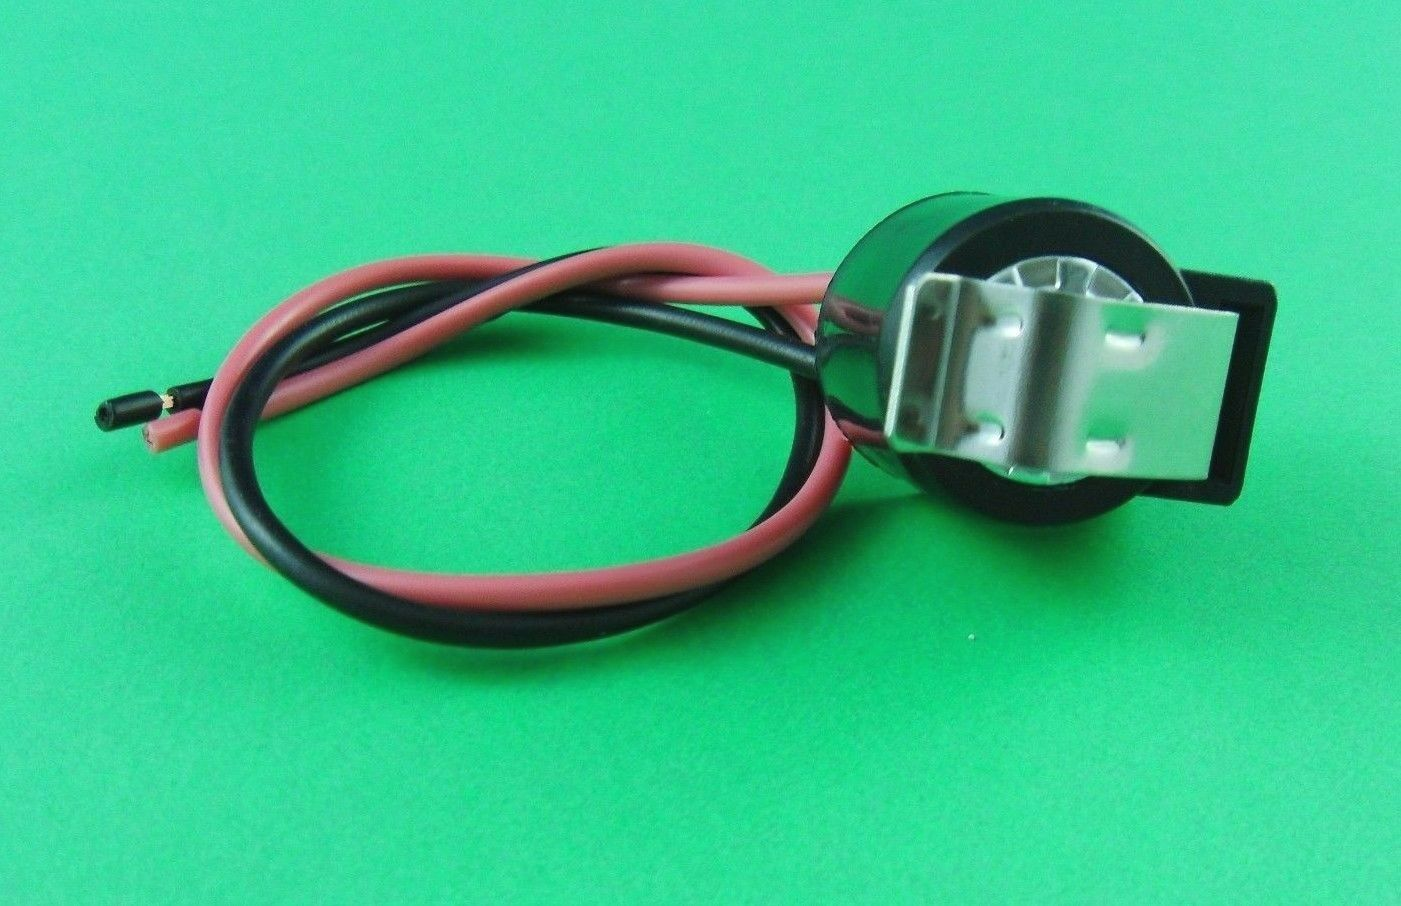 W10225581  Defrost Thermostat for Whirlpool, Sears, Kenmore